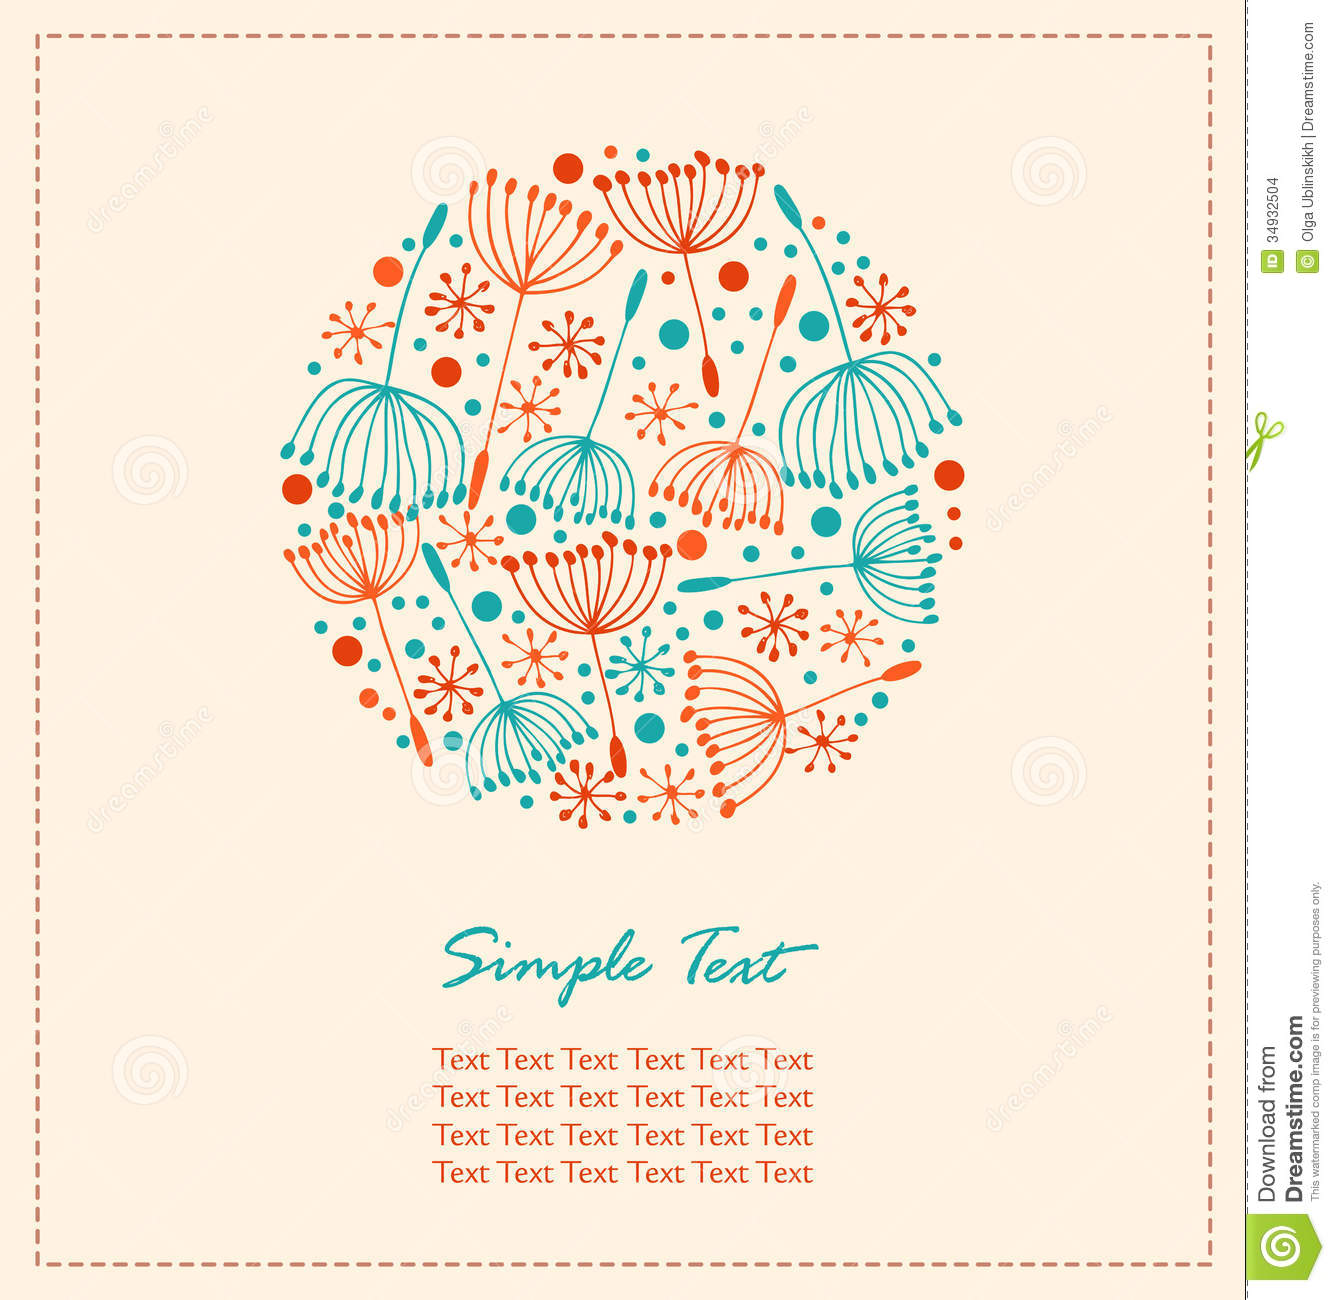 Flourish Hand Drawn Cute Card Lace Doodle Round Element